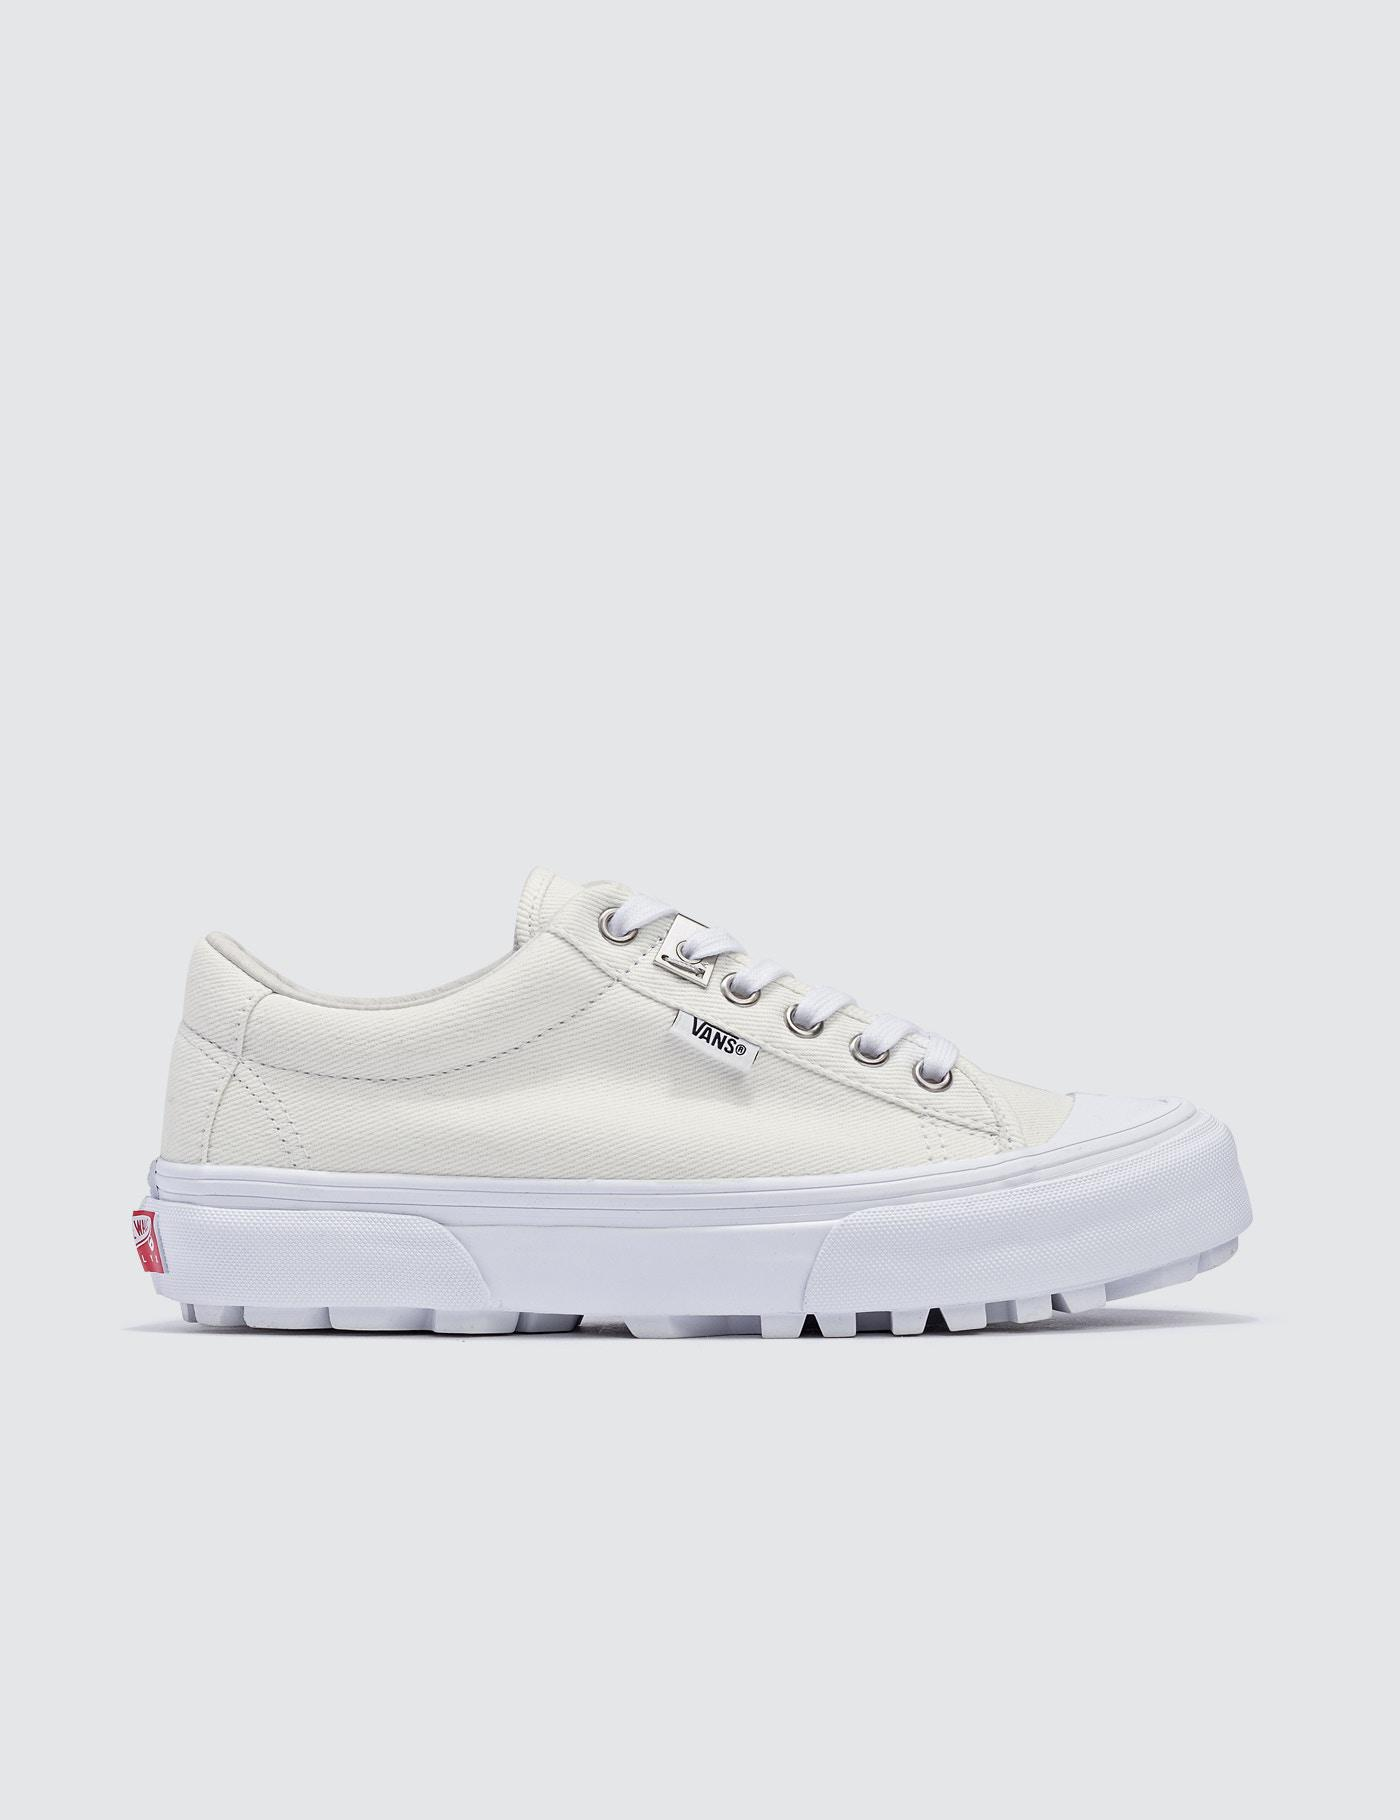 cce18841a Vans Alyx X Style 29 Tread Sole in White - Lyst